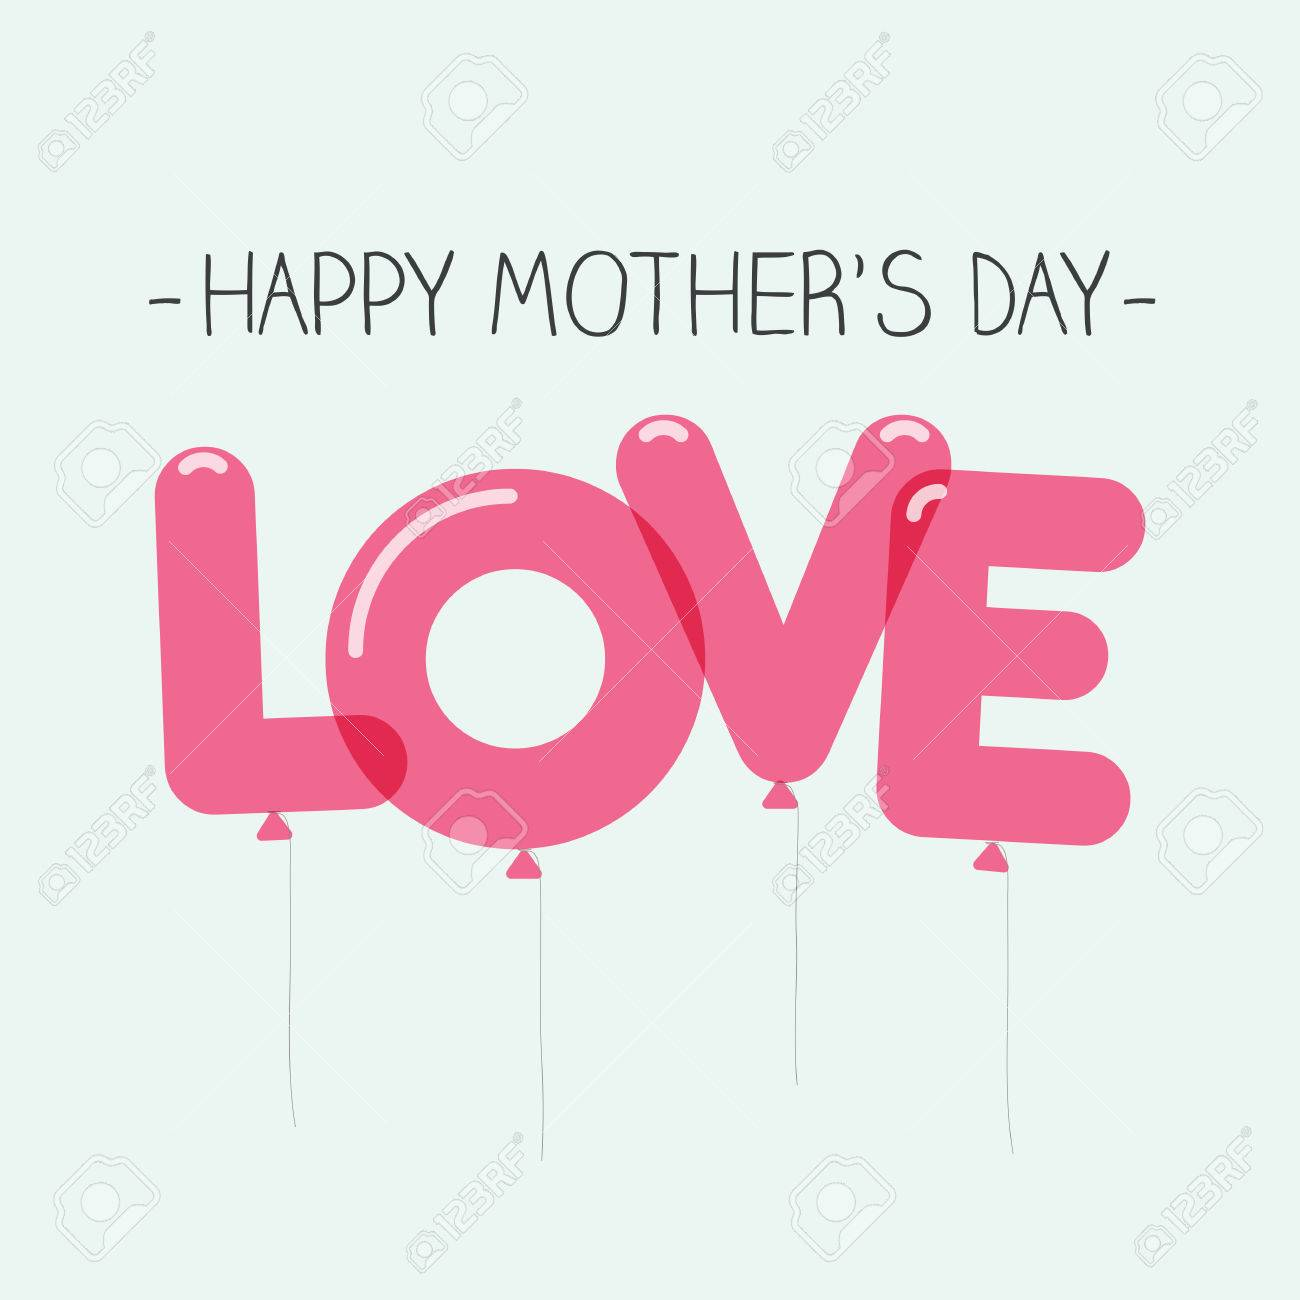 happy mothers day card love balloons type editable vector design